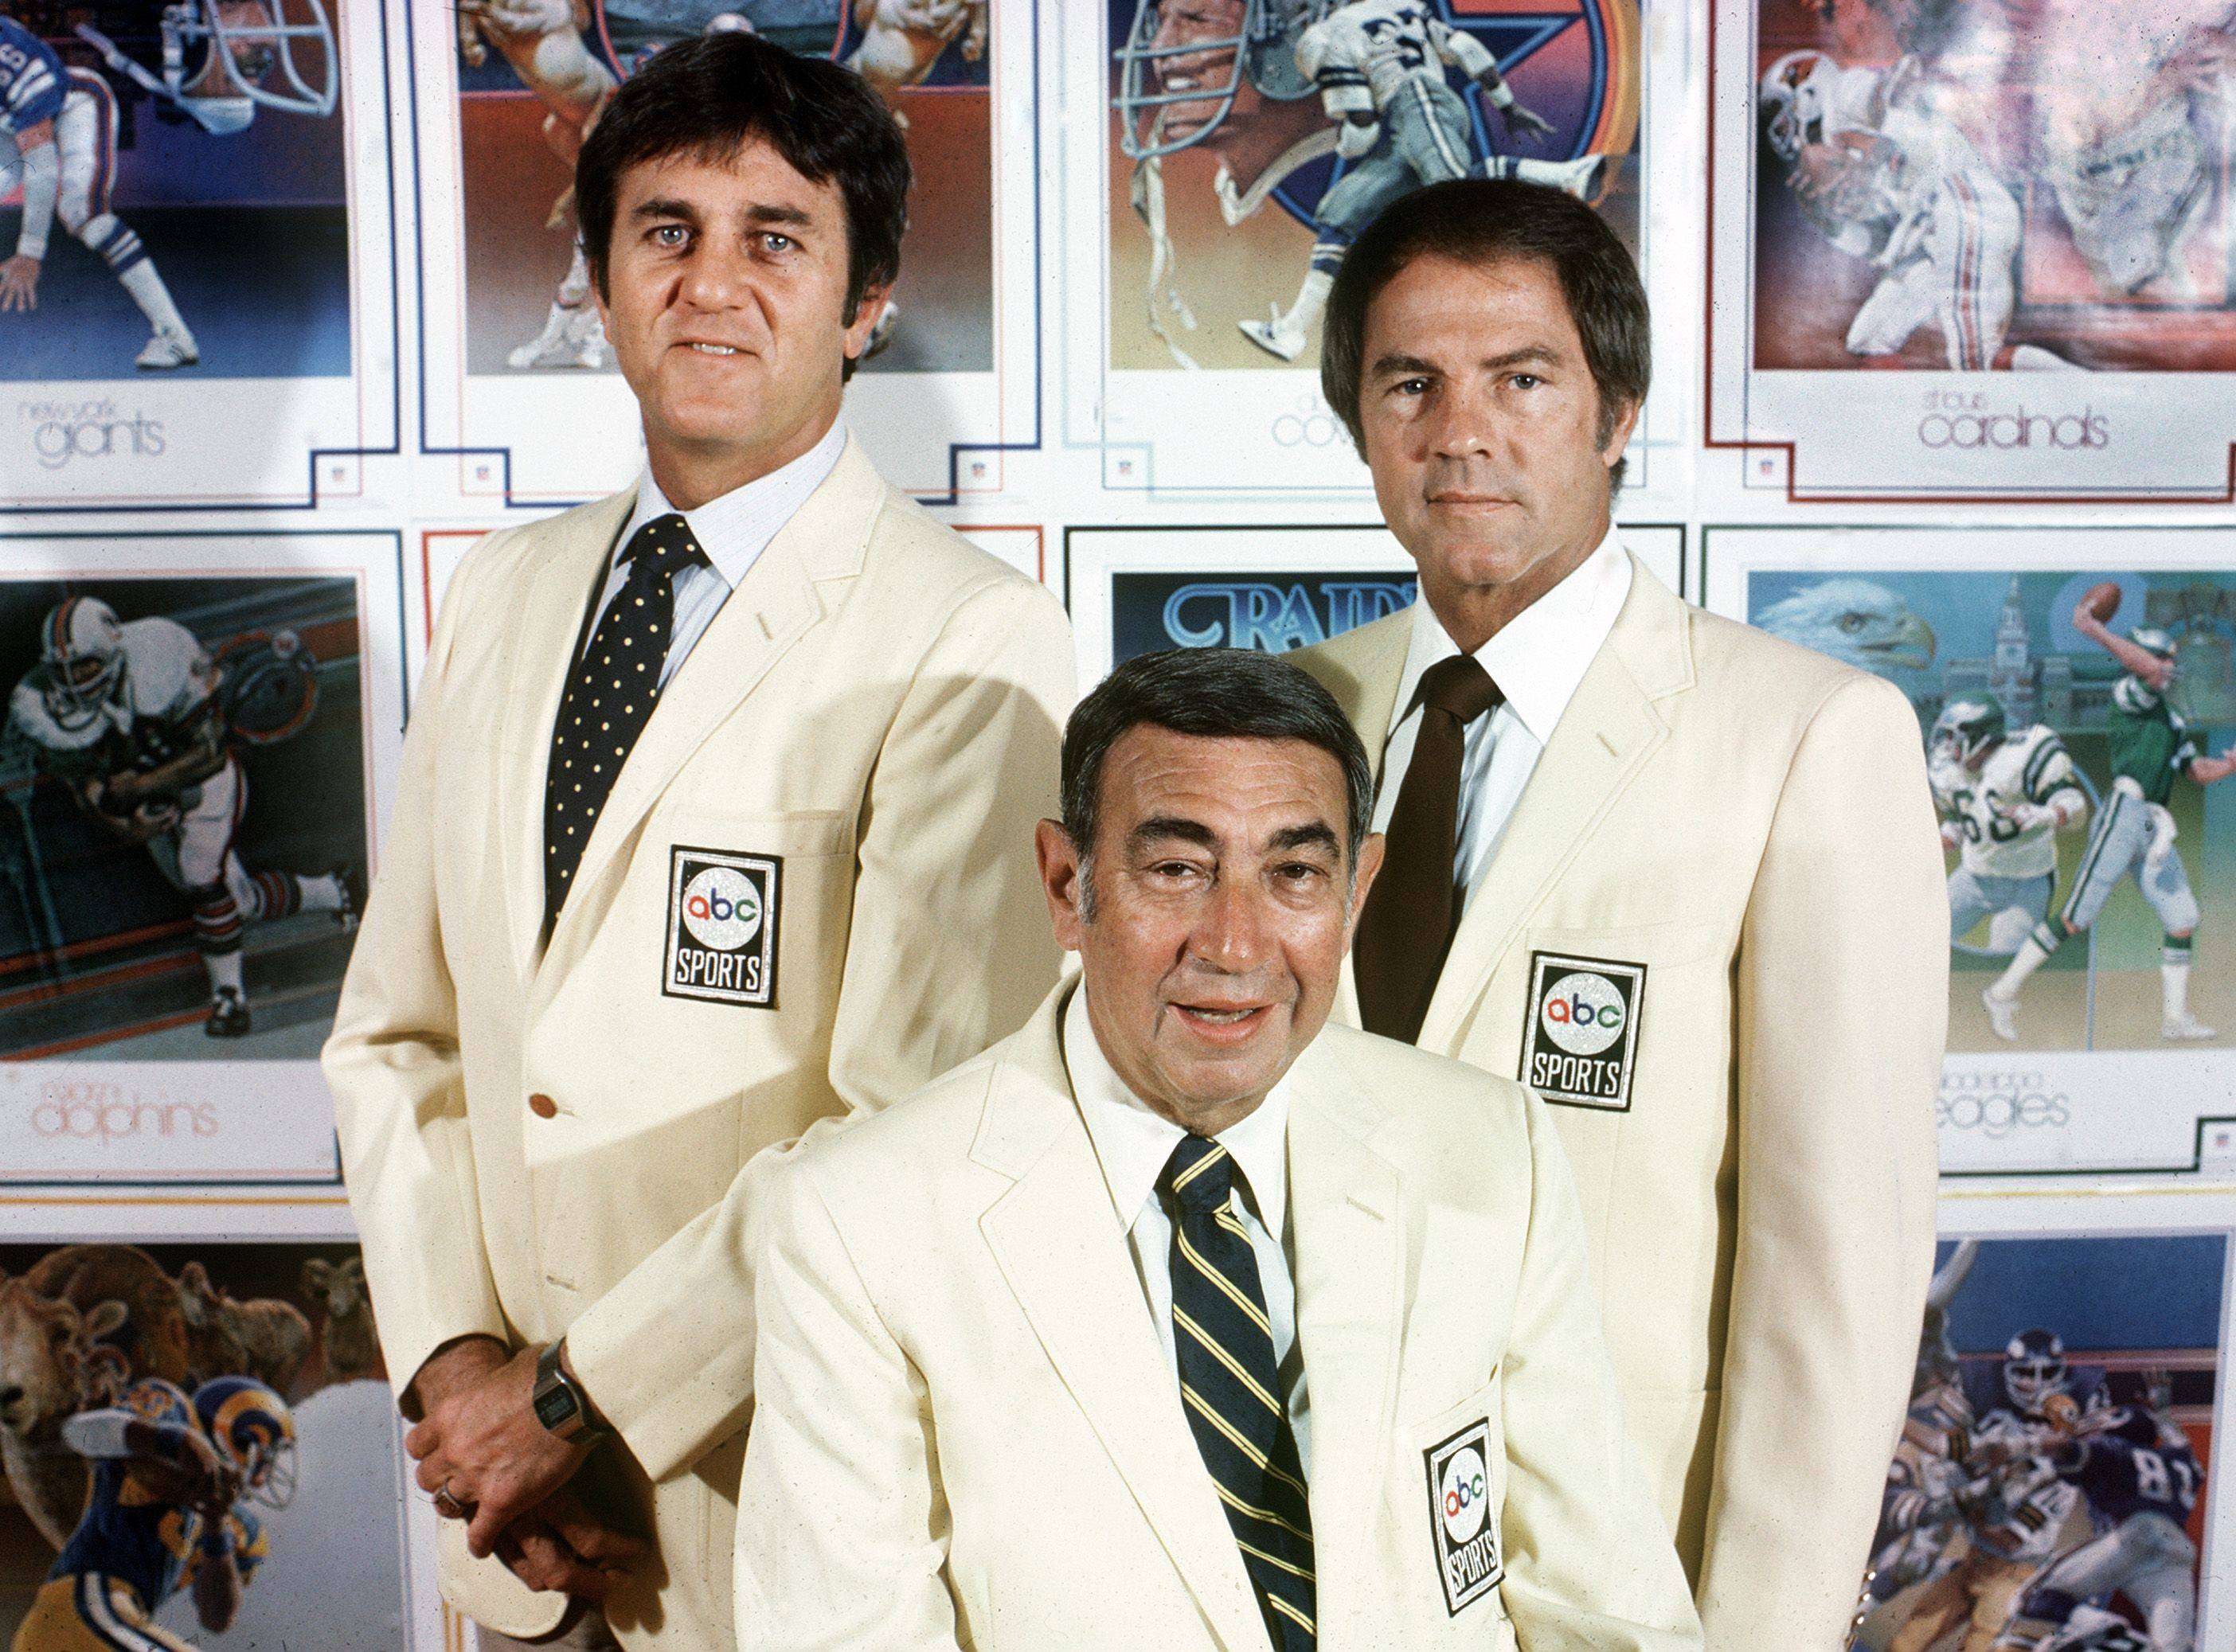 This Sept. 1980, photo provided by American Broadcasting Companies, Inc. shows ABC Monday Night Football commentators, from left, Don Meredith, Howard Cosell and Frank Gifford.